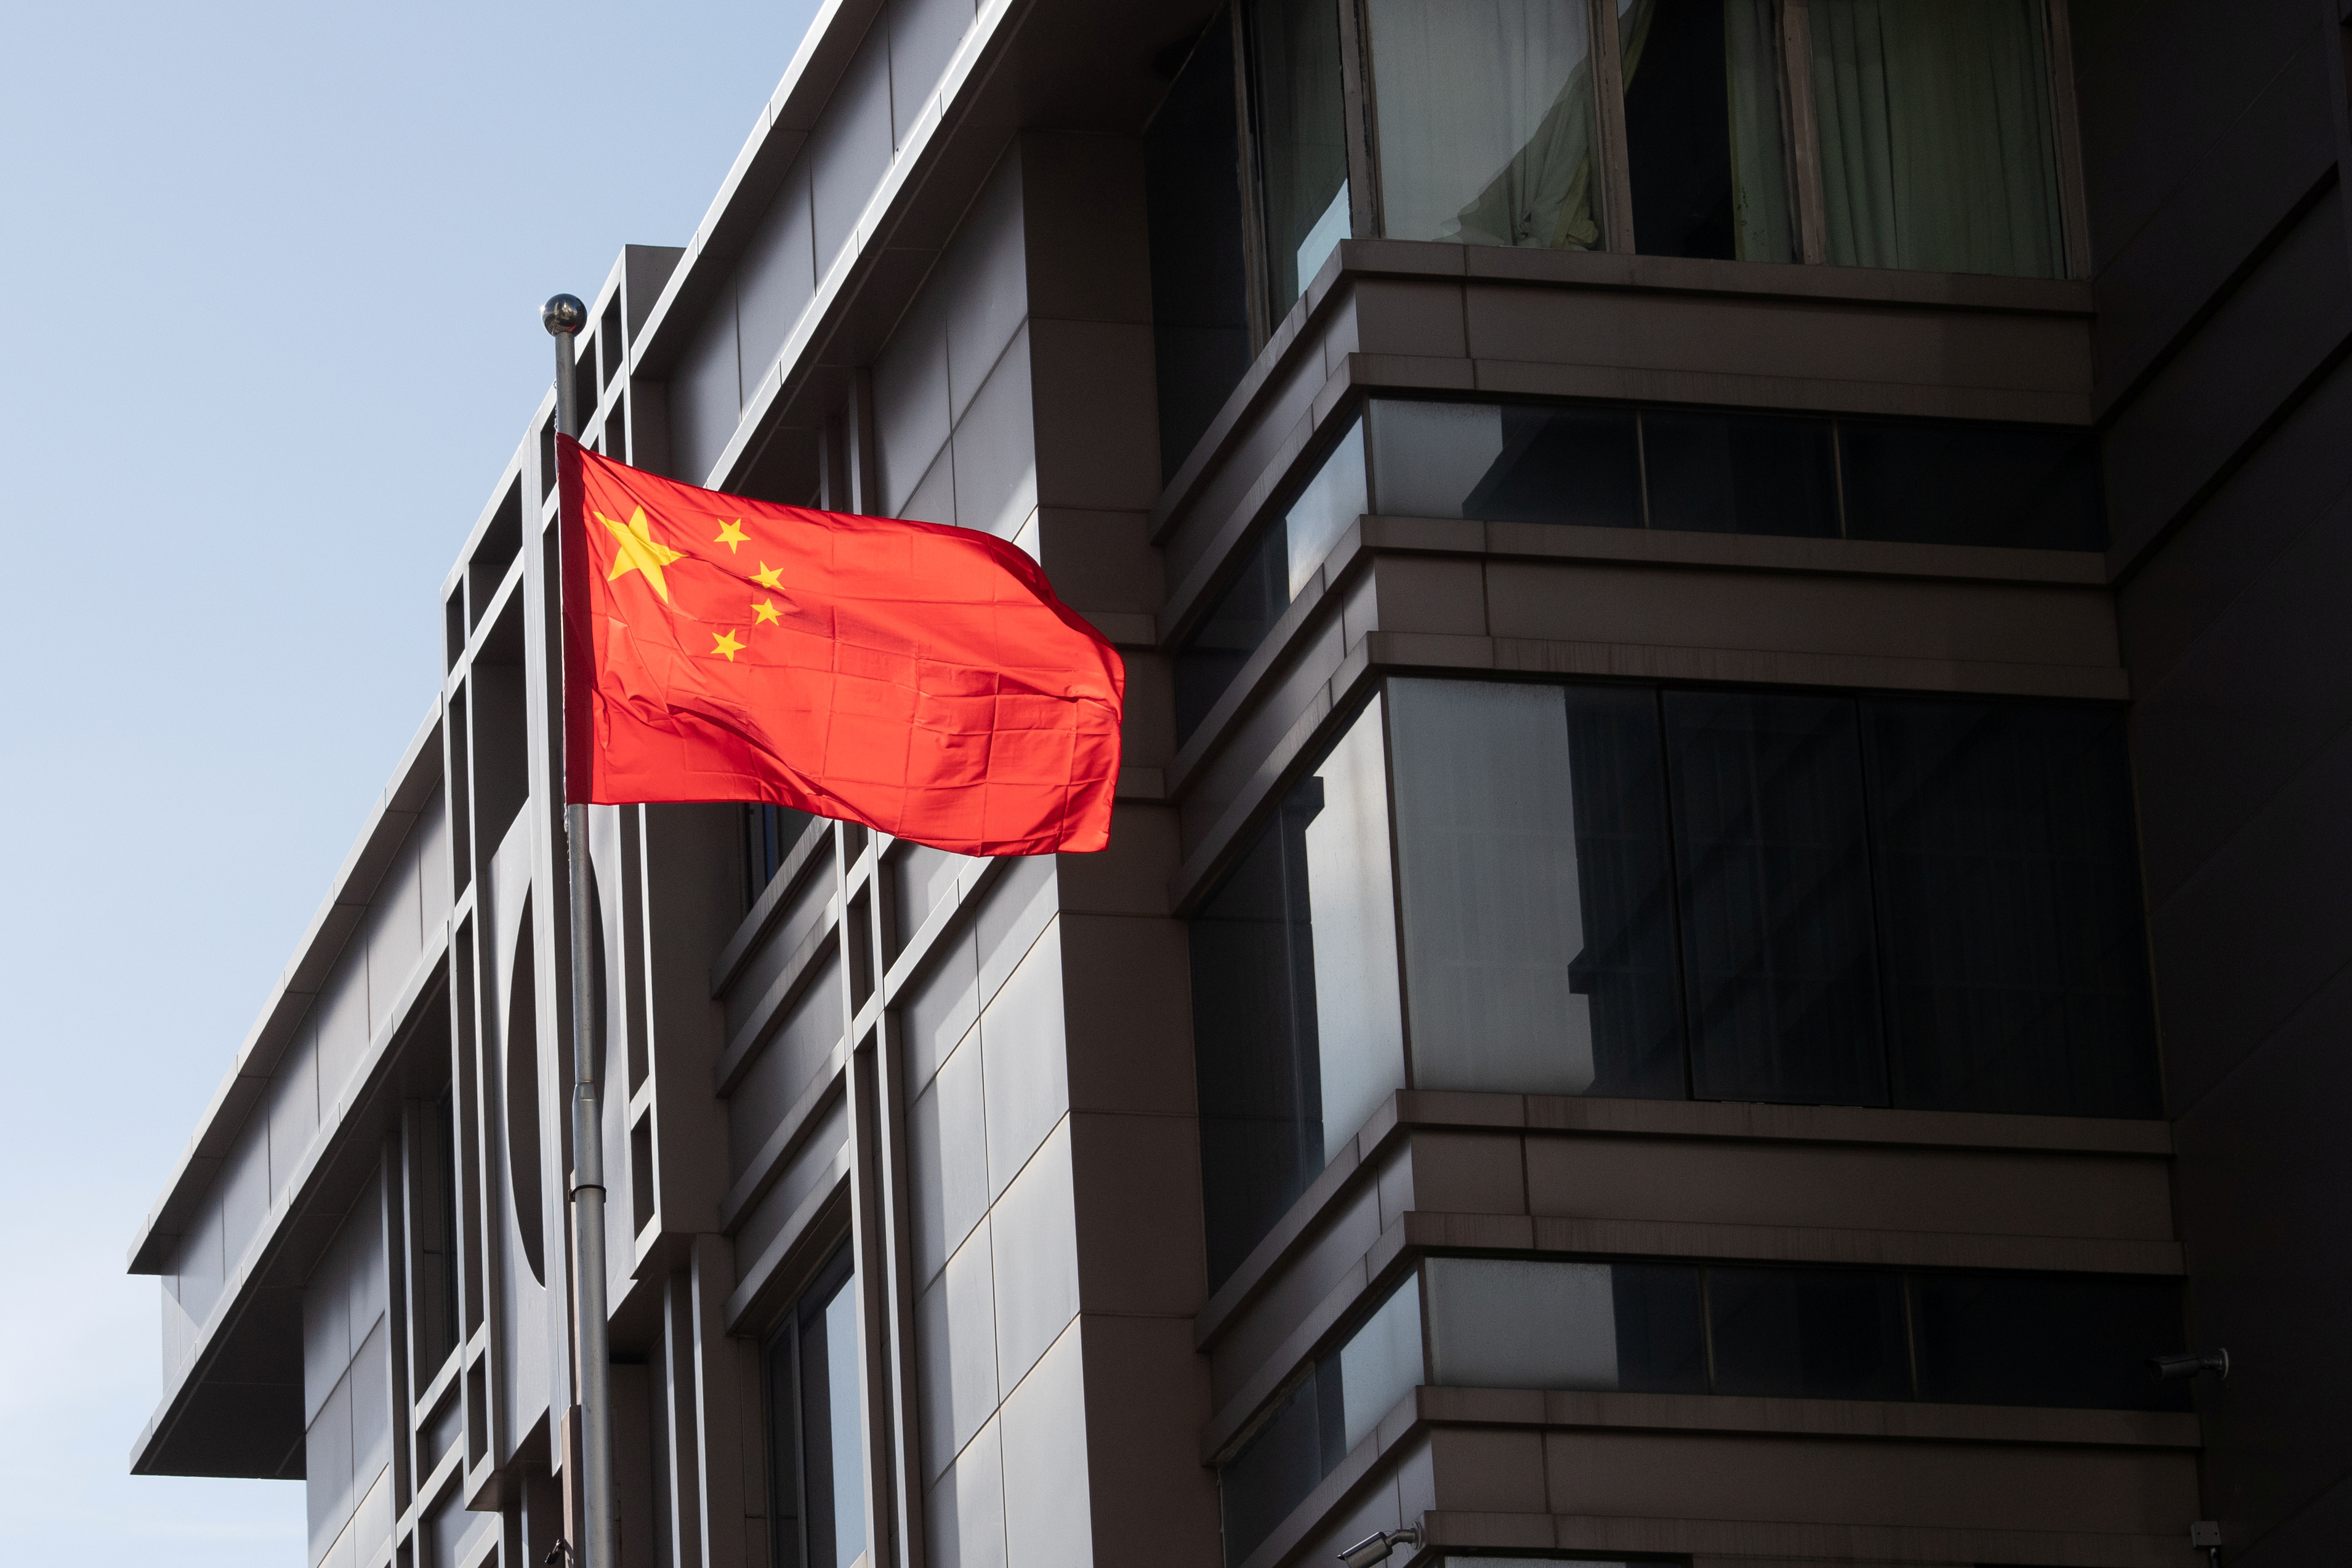 China's national flag is seen waving at the China Consulate General in Houston, Texas, U.S., July 22, 2020. REUTERS/Adrees Latif